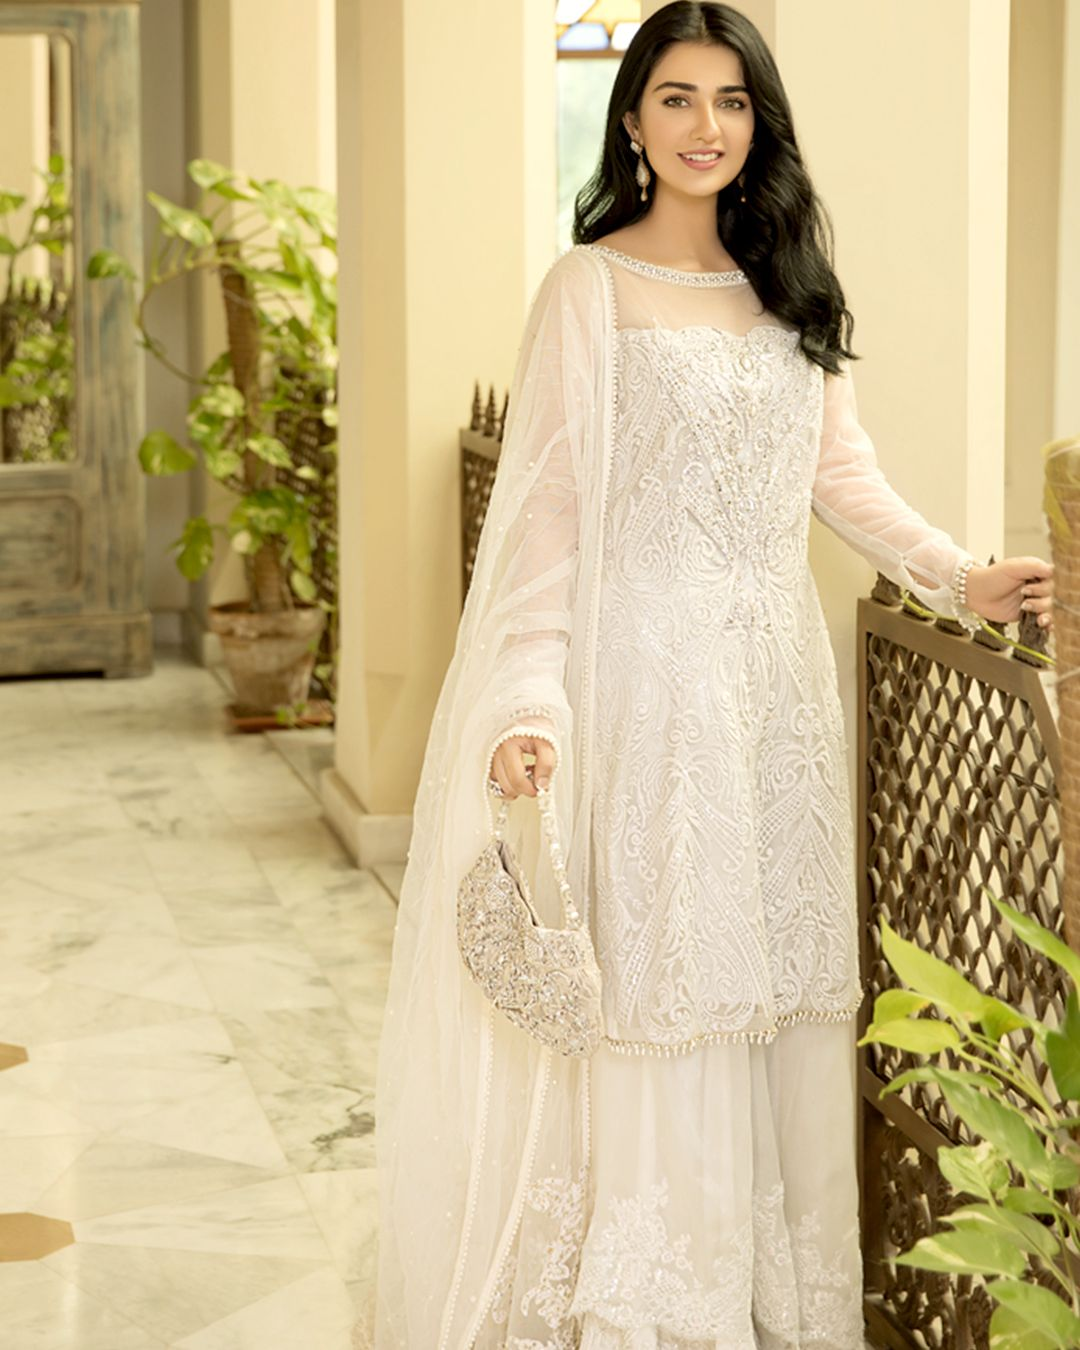 Sarah Khan Looks Gorgeously Elegant In This Beautiful Embellished Pure White Traditional Beautiful White Dresses Indian Wedding Outfits Designer Dresses Indian